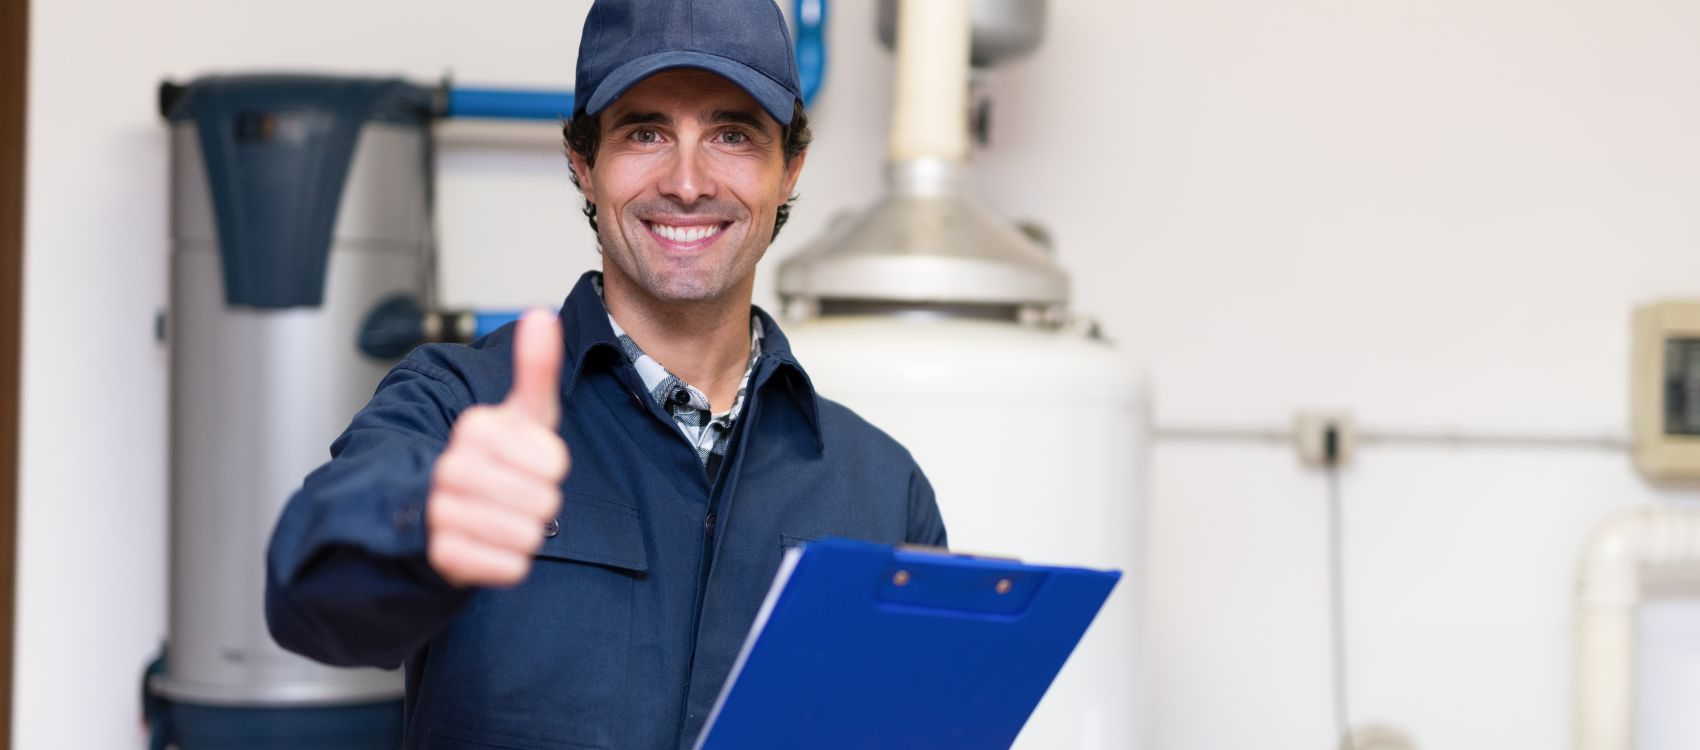 water heater service in orpington